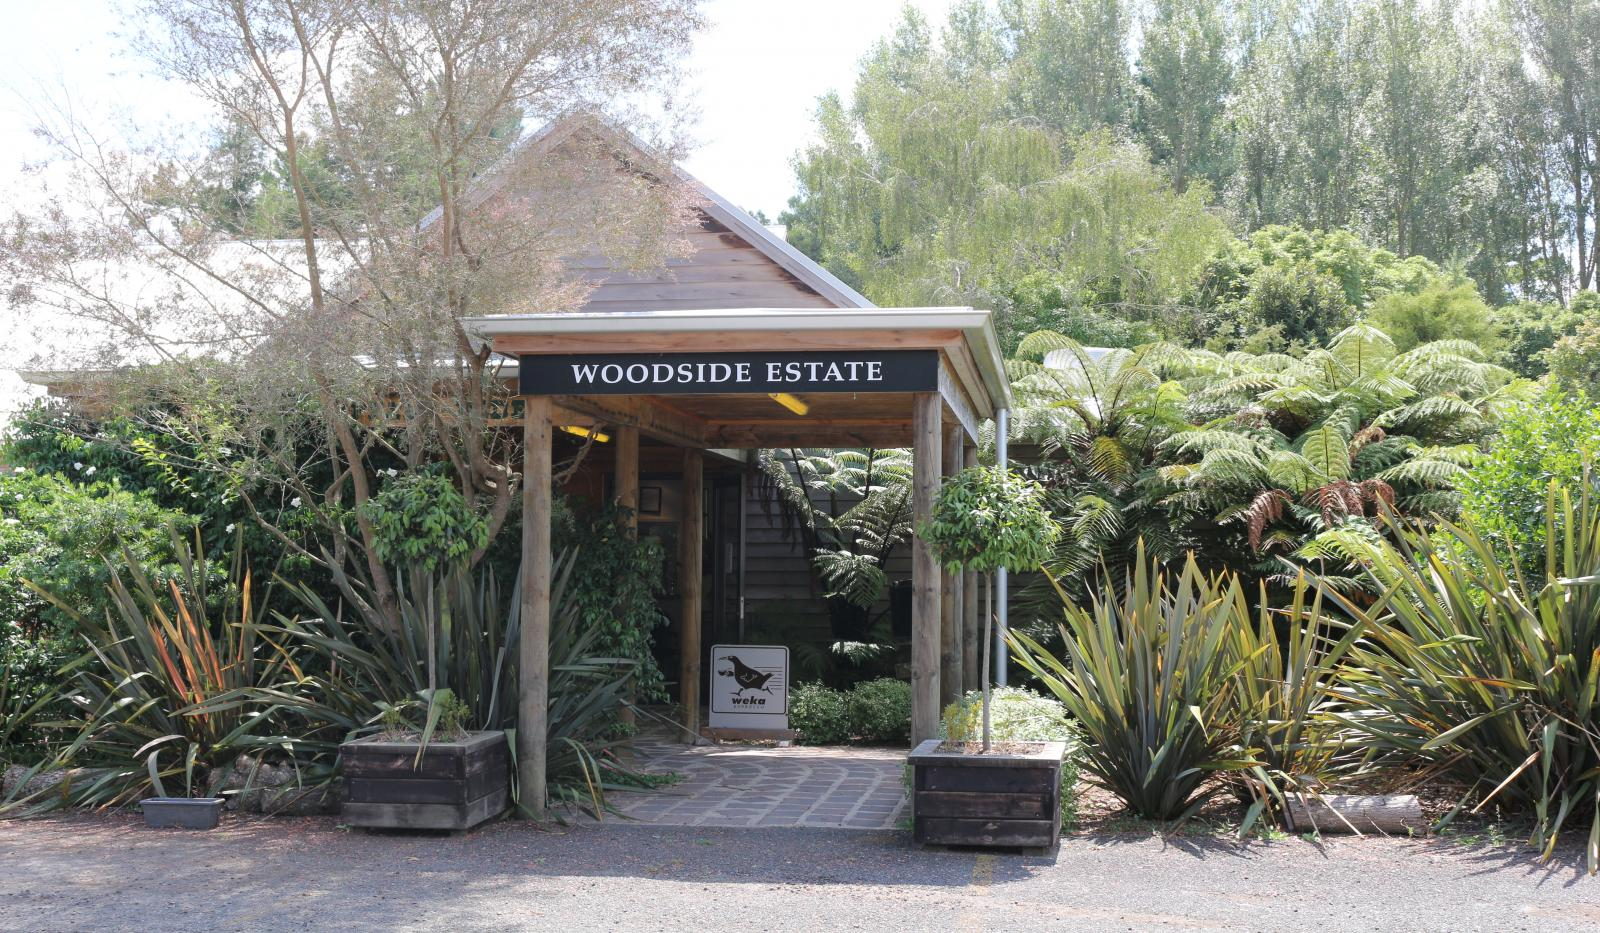 Woodside Estate Cafe & Restaurant